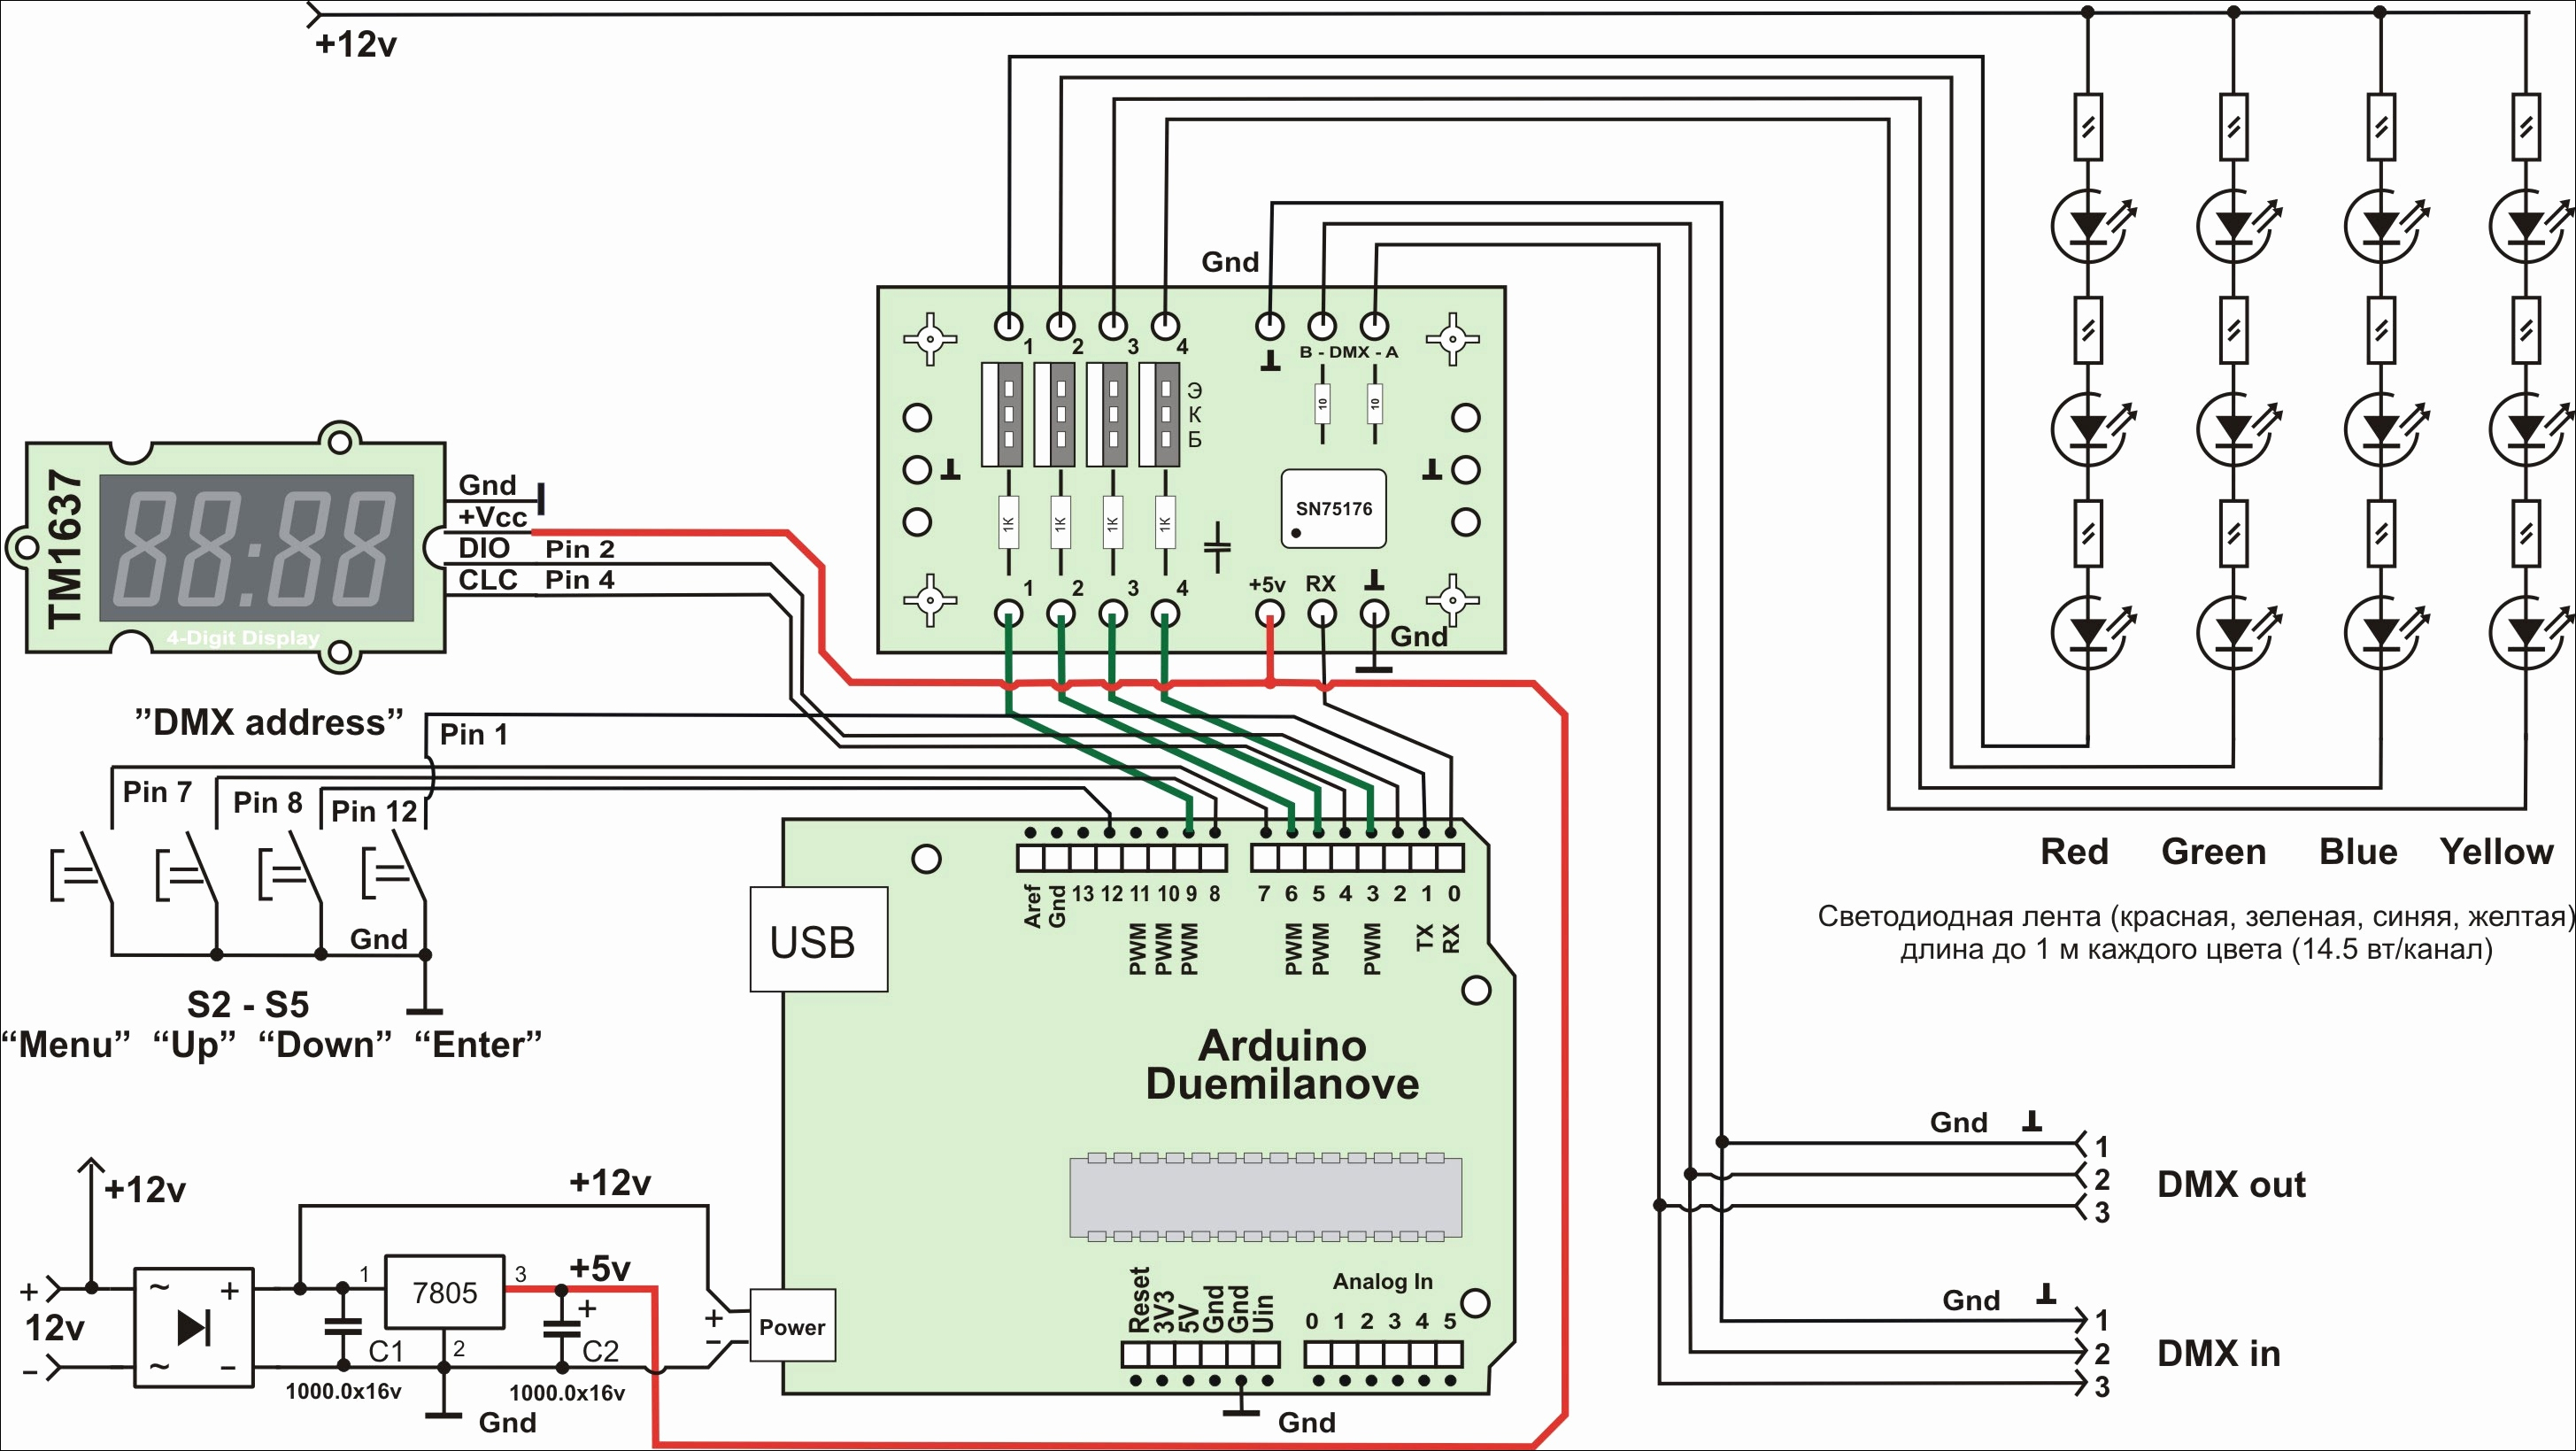 0 10 Volt Dimming Wiring Diagrams - All Wiring Diagram - 0-10 Volt Dimming Wiring Diagram